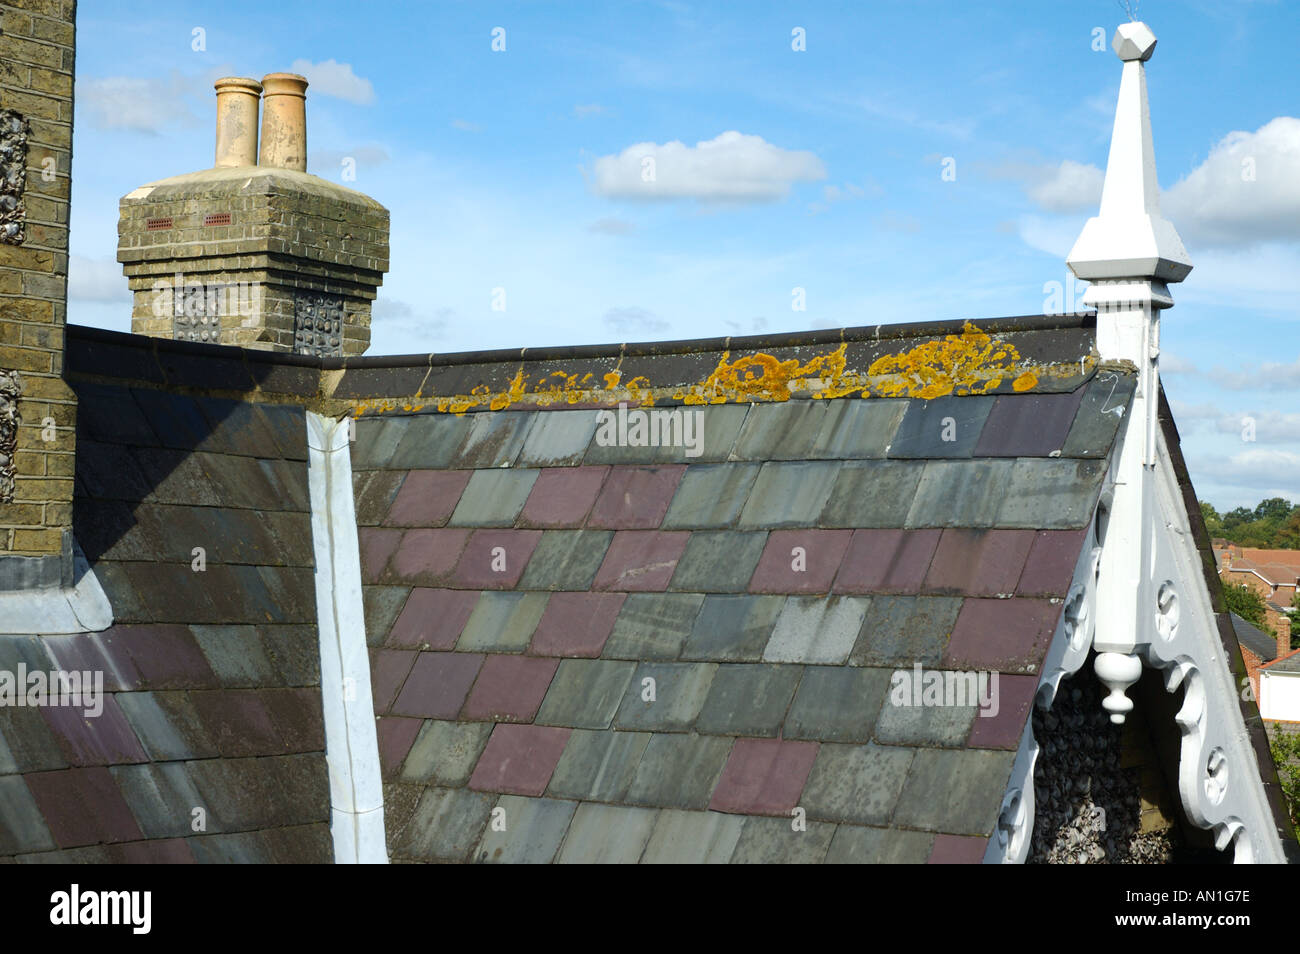 Slated Roof And Ornamental Finial And Barge Boards On